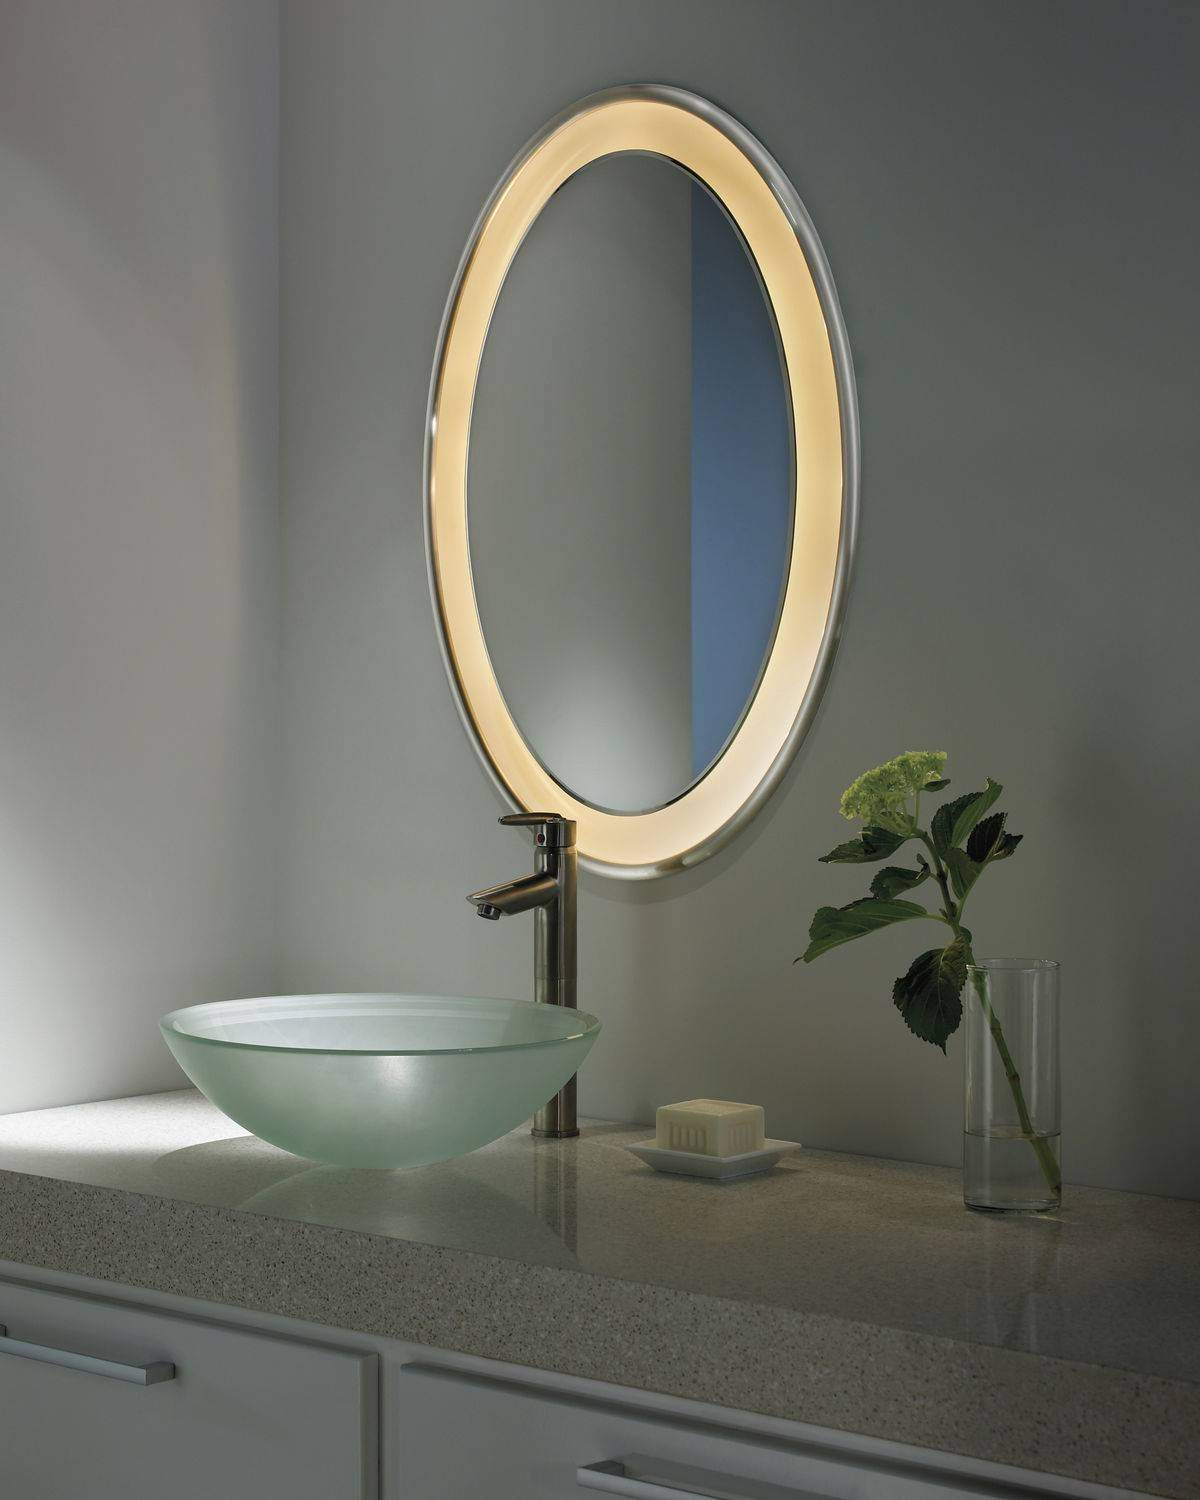 Modern Bathroom Mirrors. Bathroom Mirror With Solid Wood Frame regarding White Oval Bathroom Mirrors (Image 19 of 25)